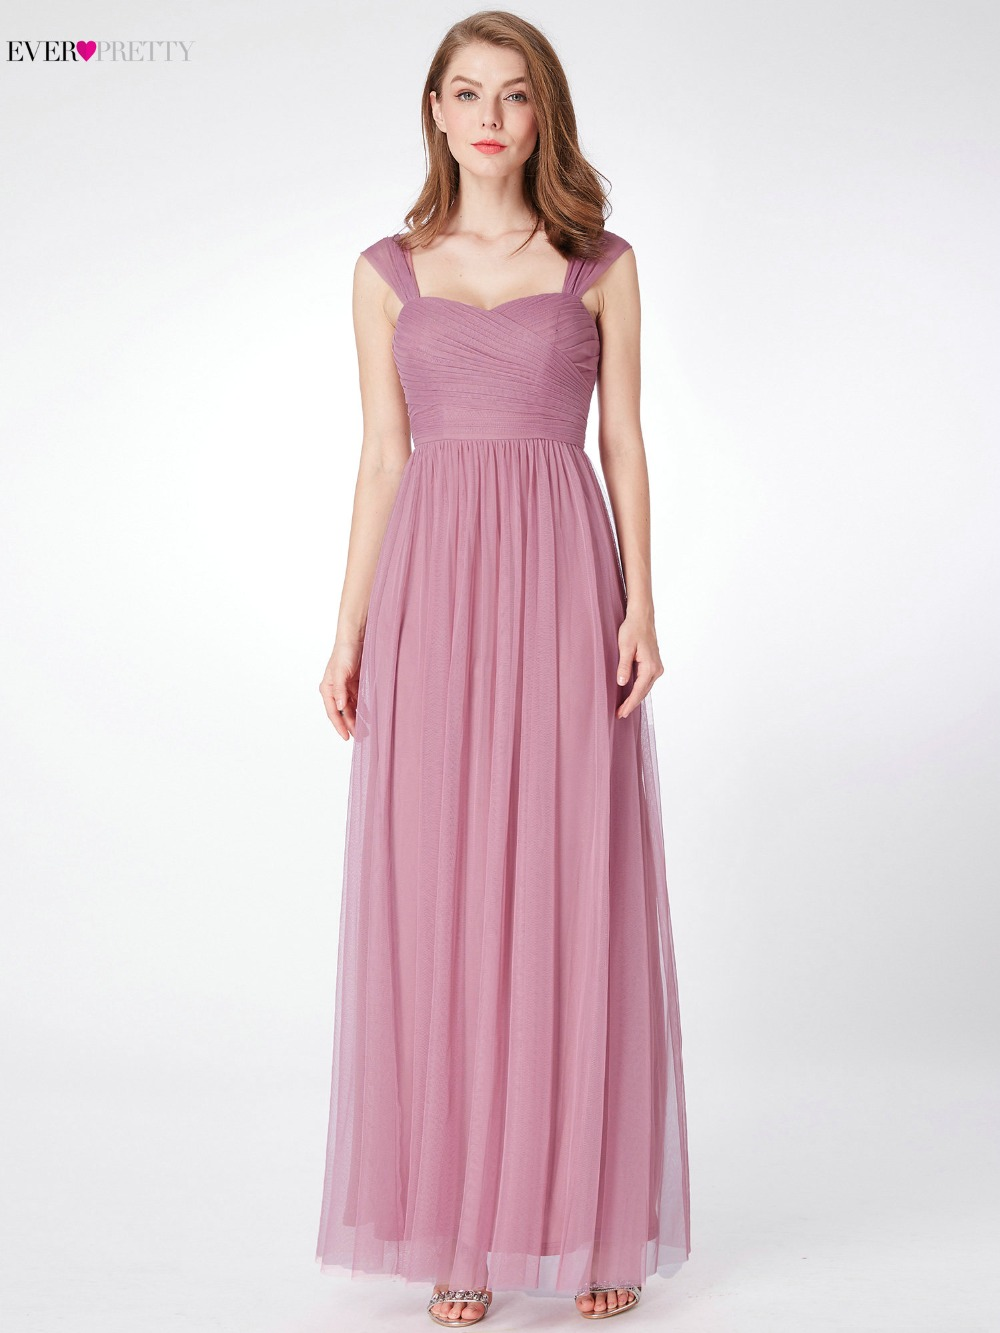 Ever Pretty Tulle Bridesmaid Dress for Wedding Party EP07304 A Line ...